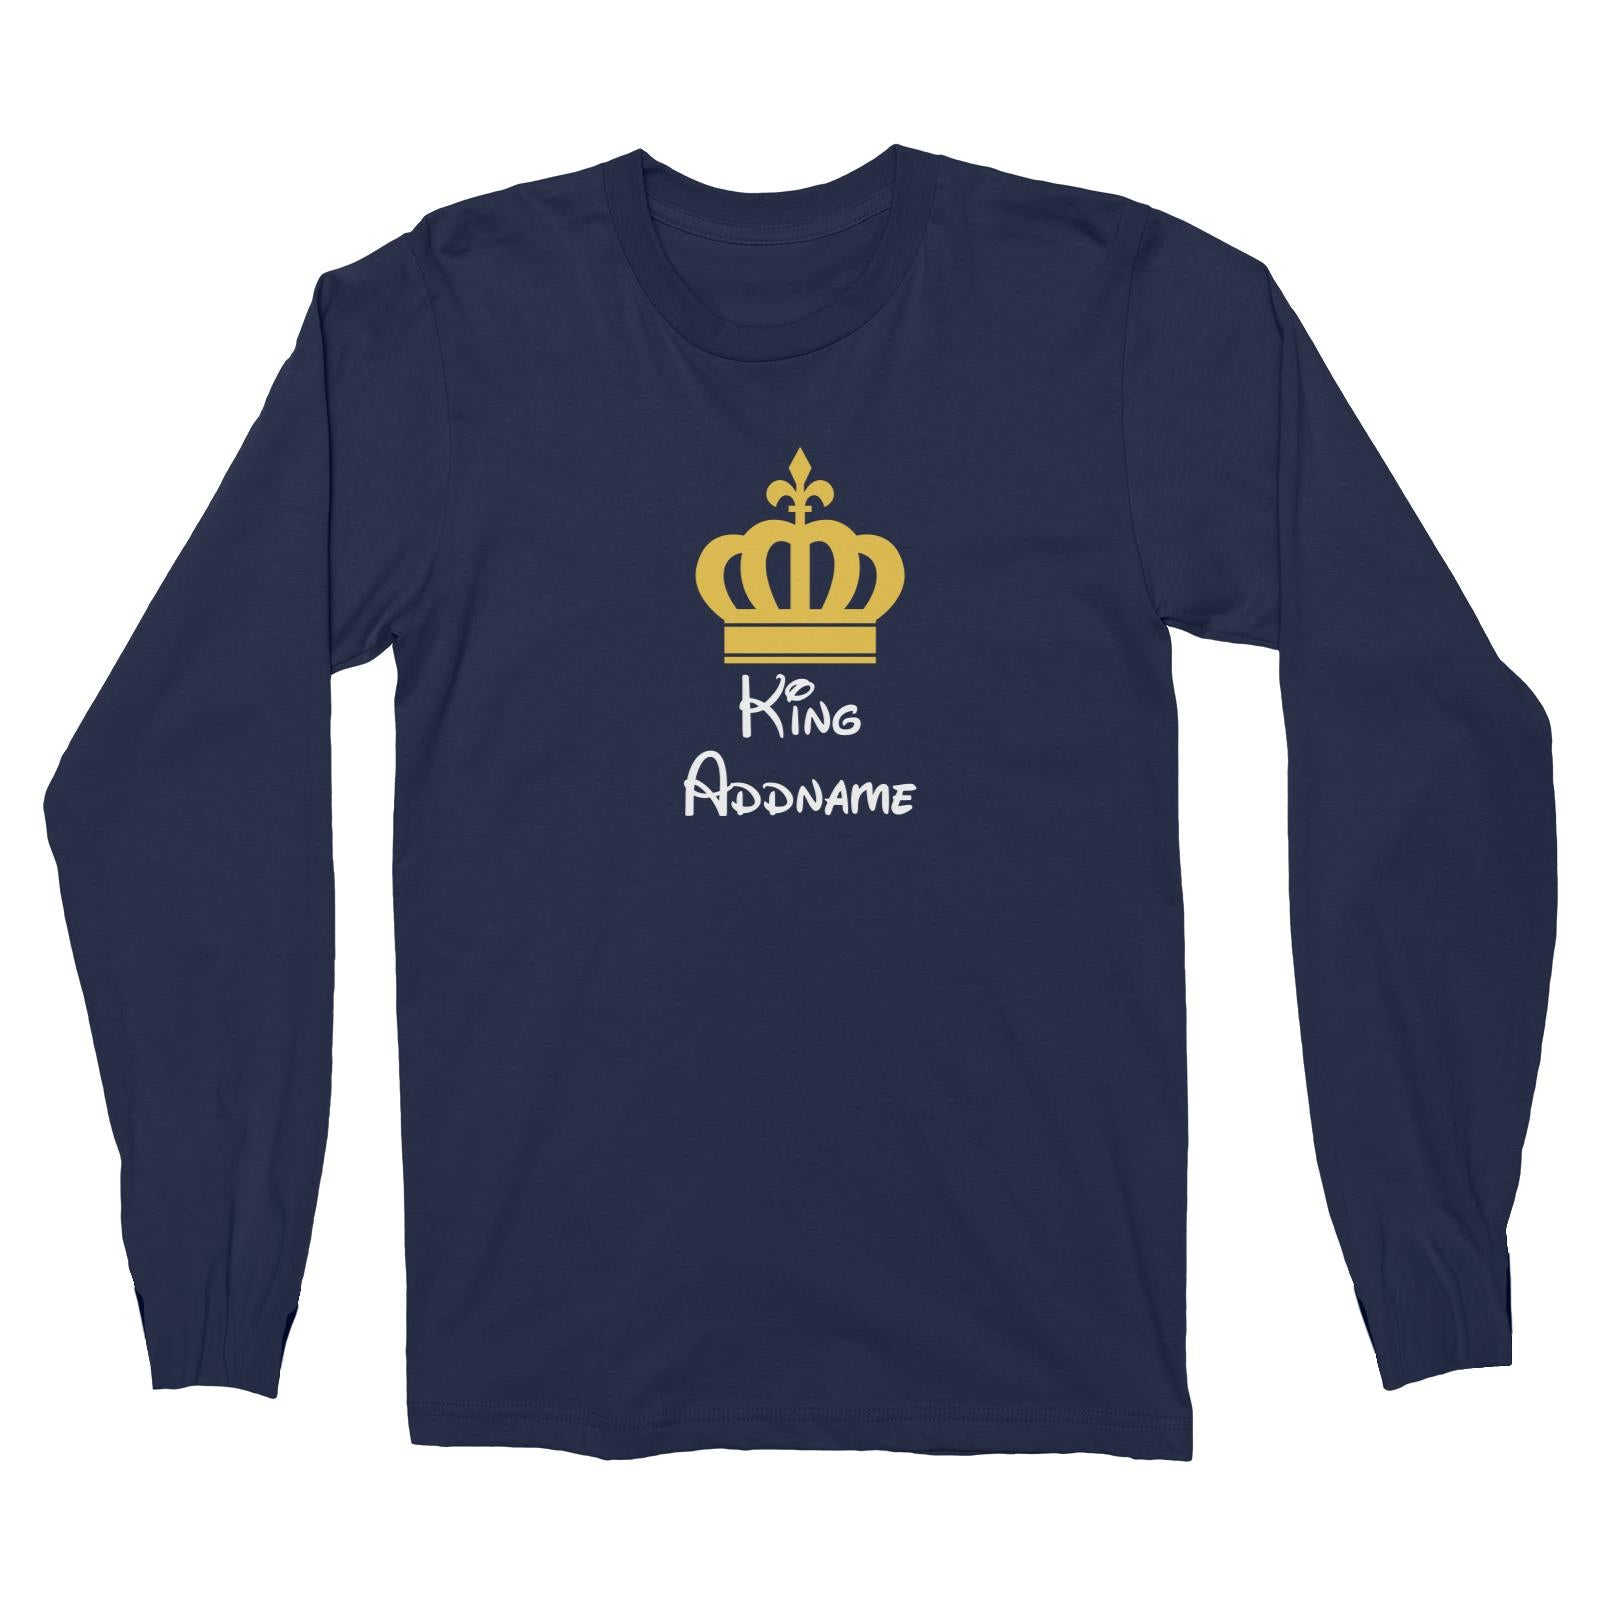 Royal King with Crown Addname Long Sleeve Unisex T-Shirt